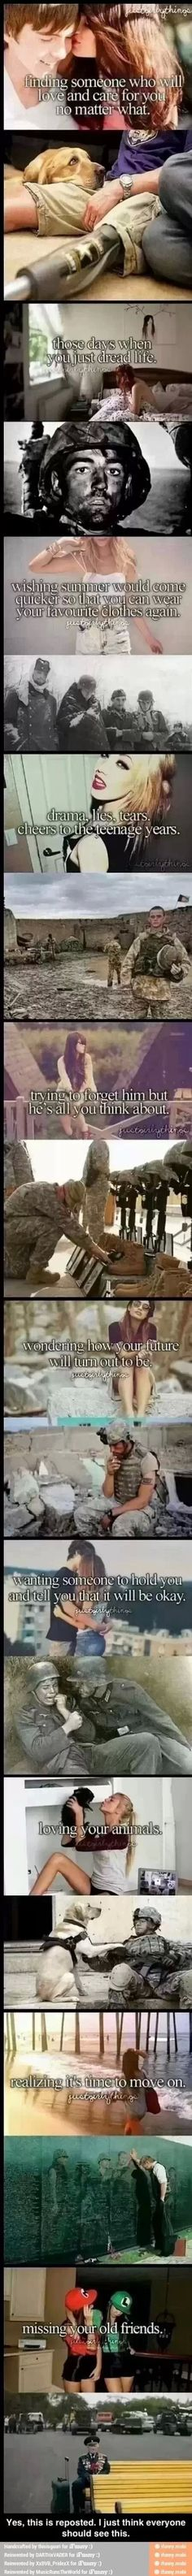 Is this seriously how society acts. What have we become? Thank you to all who protect our country and who protected our country! Happy Veterans Day!